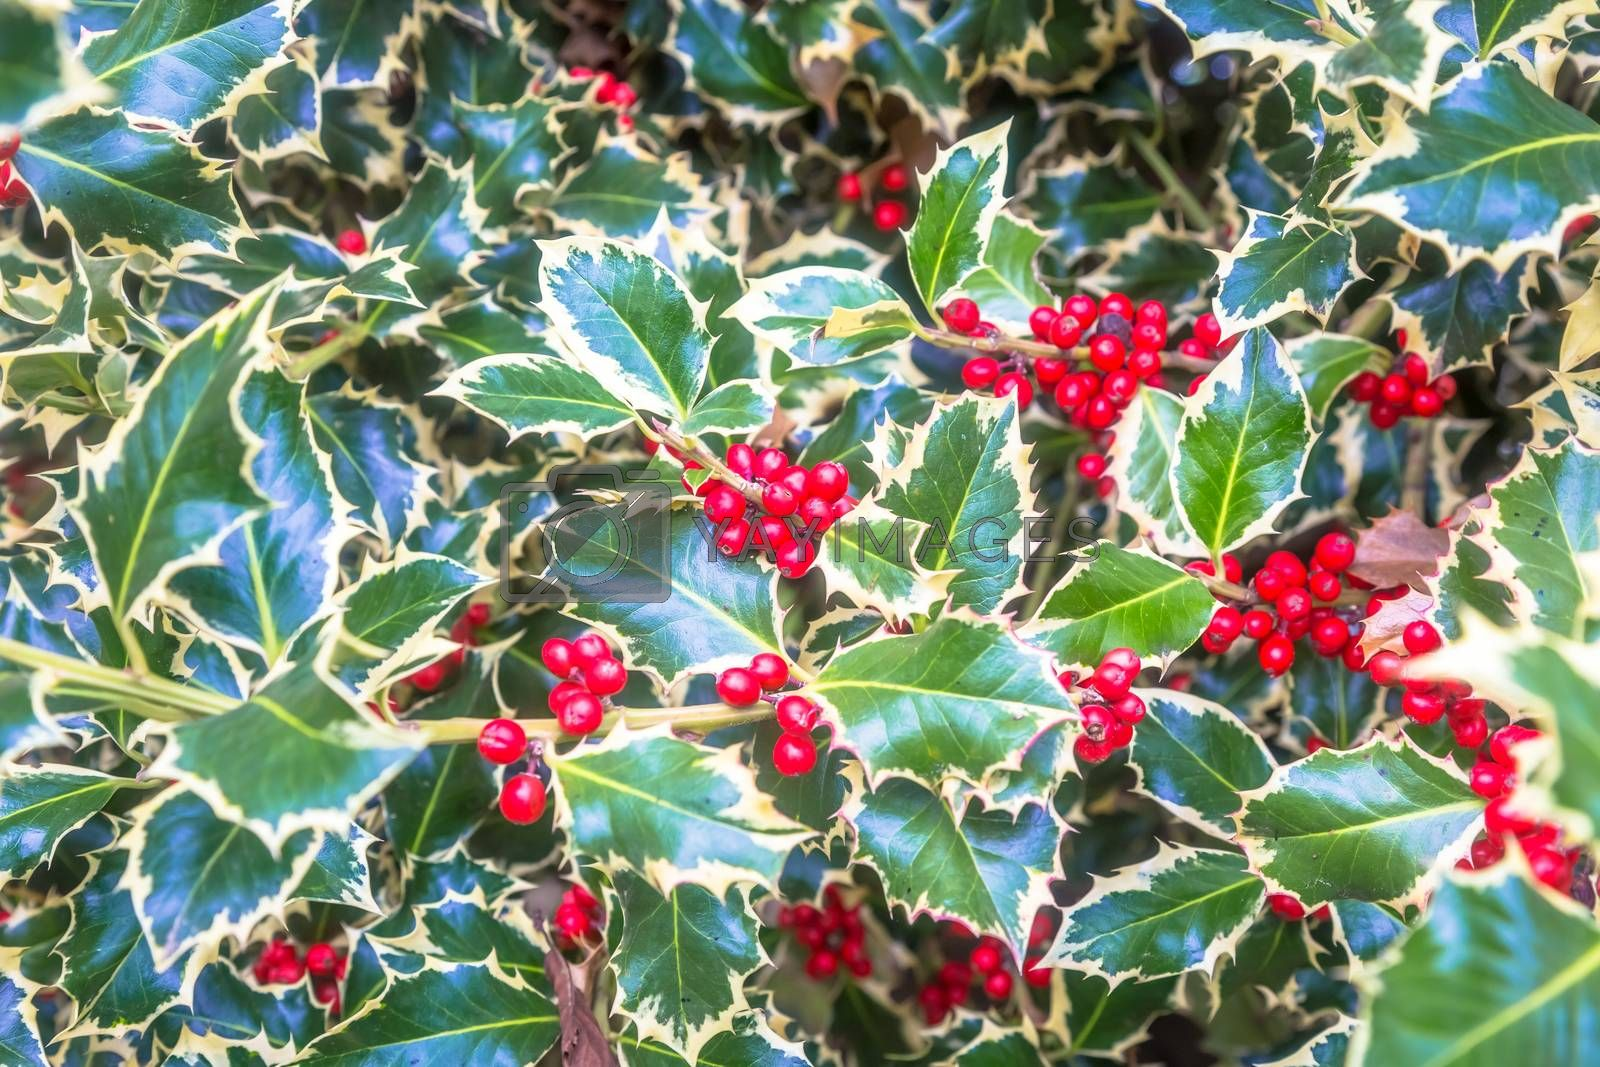 Holly barries background. Traditional symbol of Christmas and New Year season.